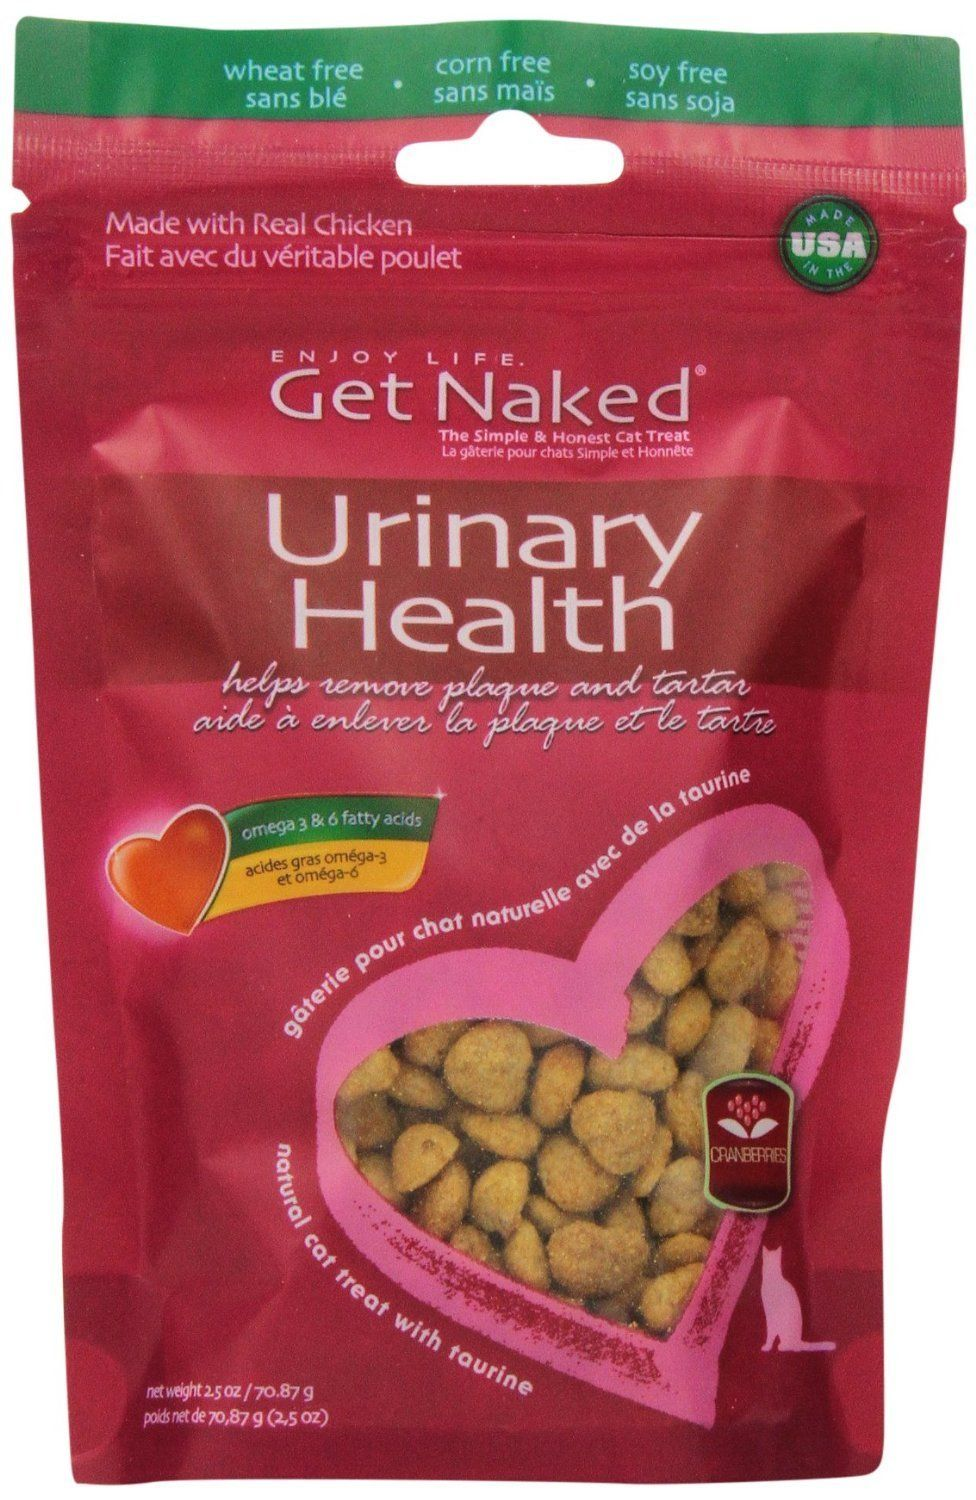 Cats urinary health crunchy treats chewing helps remove